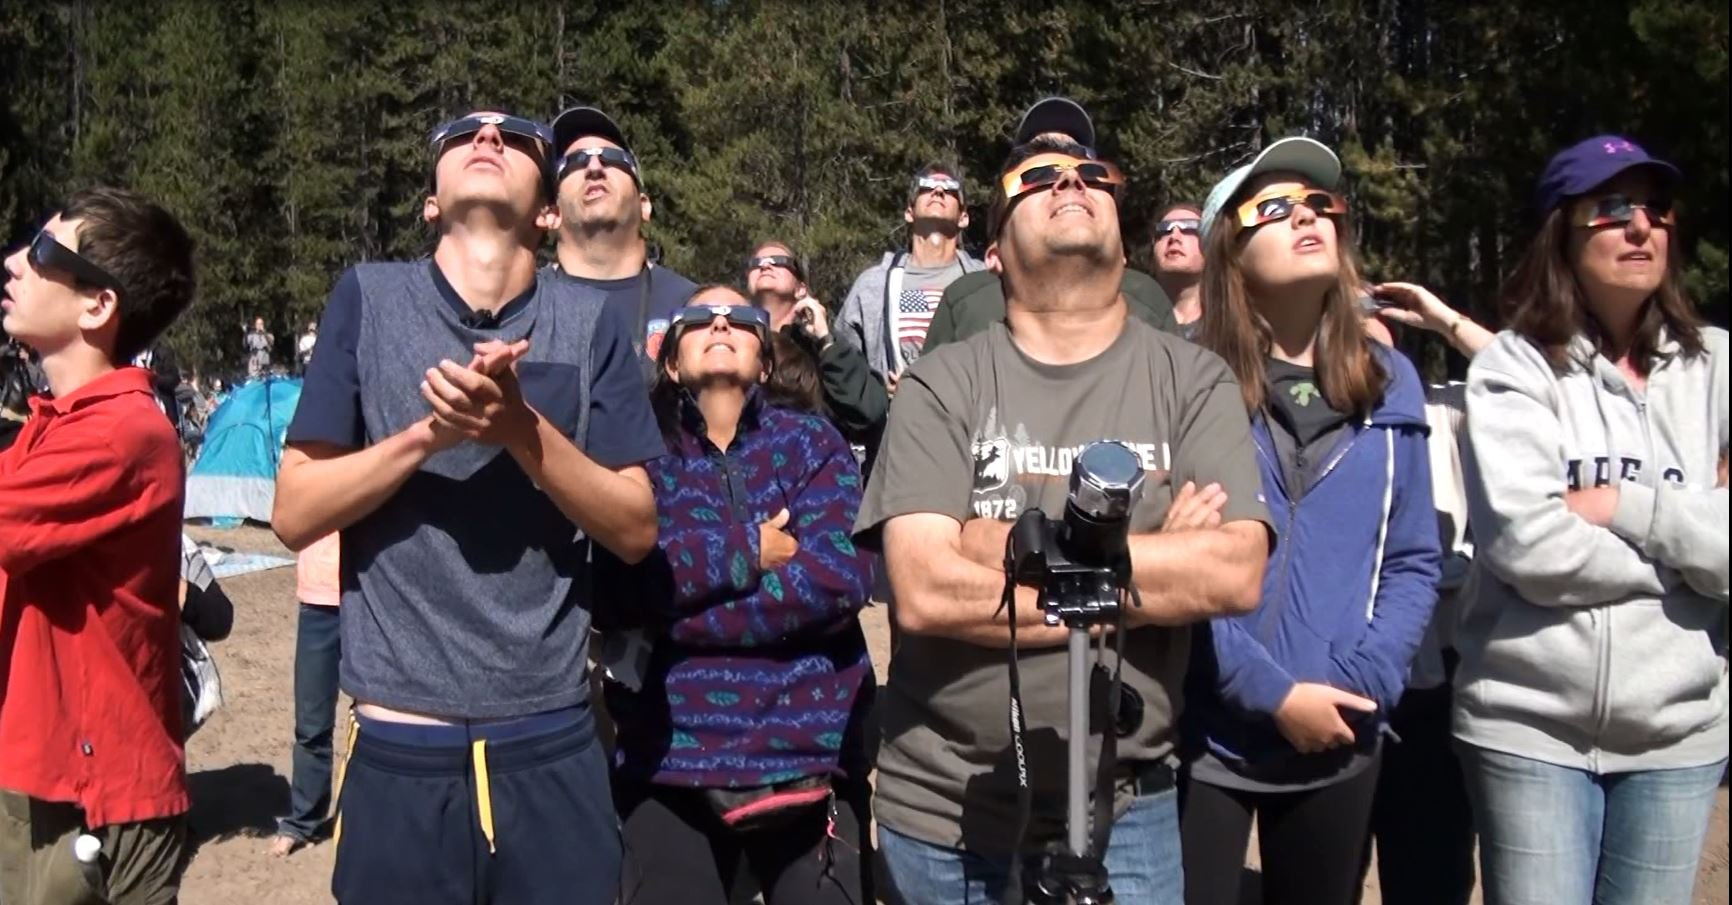 People gather from all over the world to view the eclipse in Grand Teton National Park